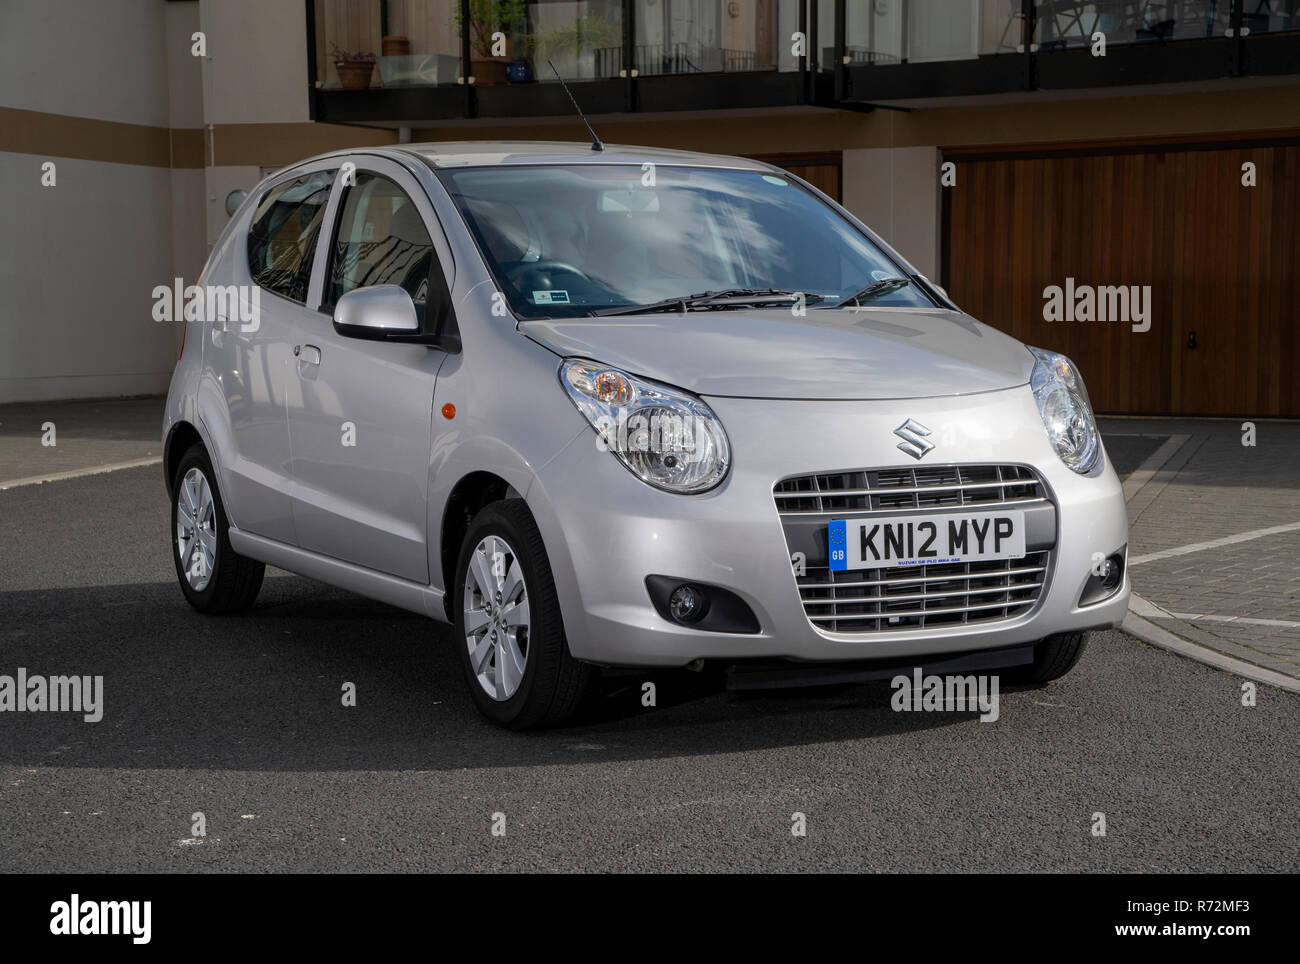 2012 Suzuki Alto Japanese Small Car Stock Photo 228097383 Alamy